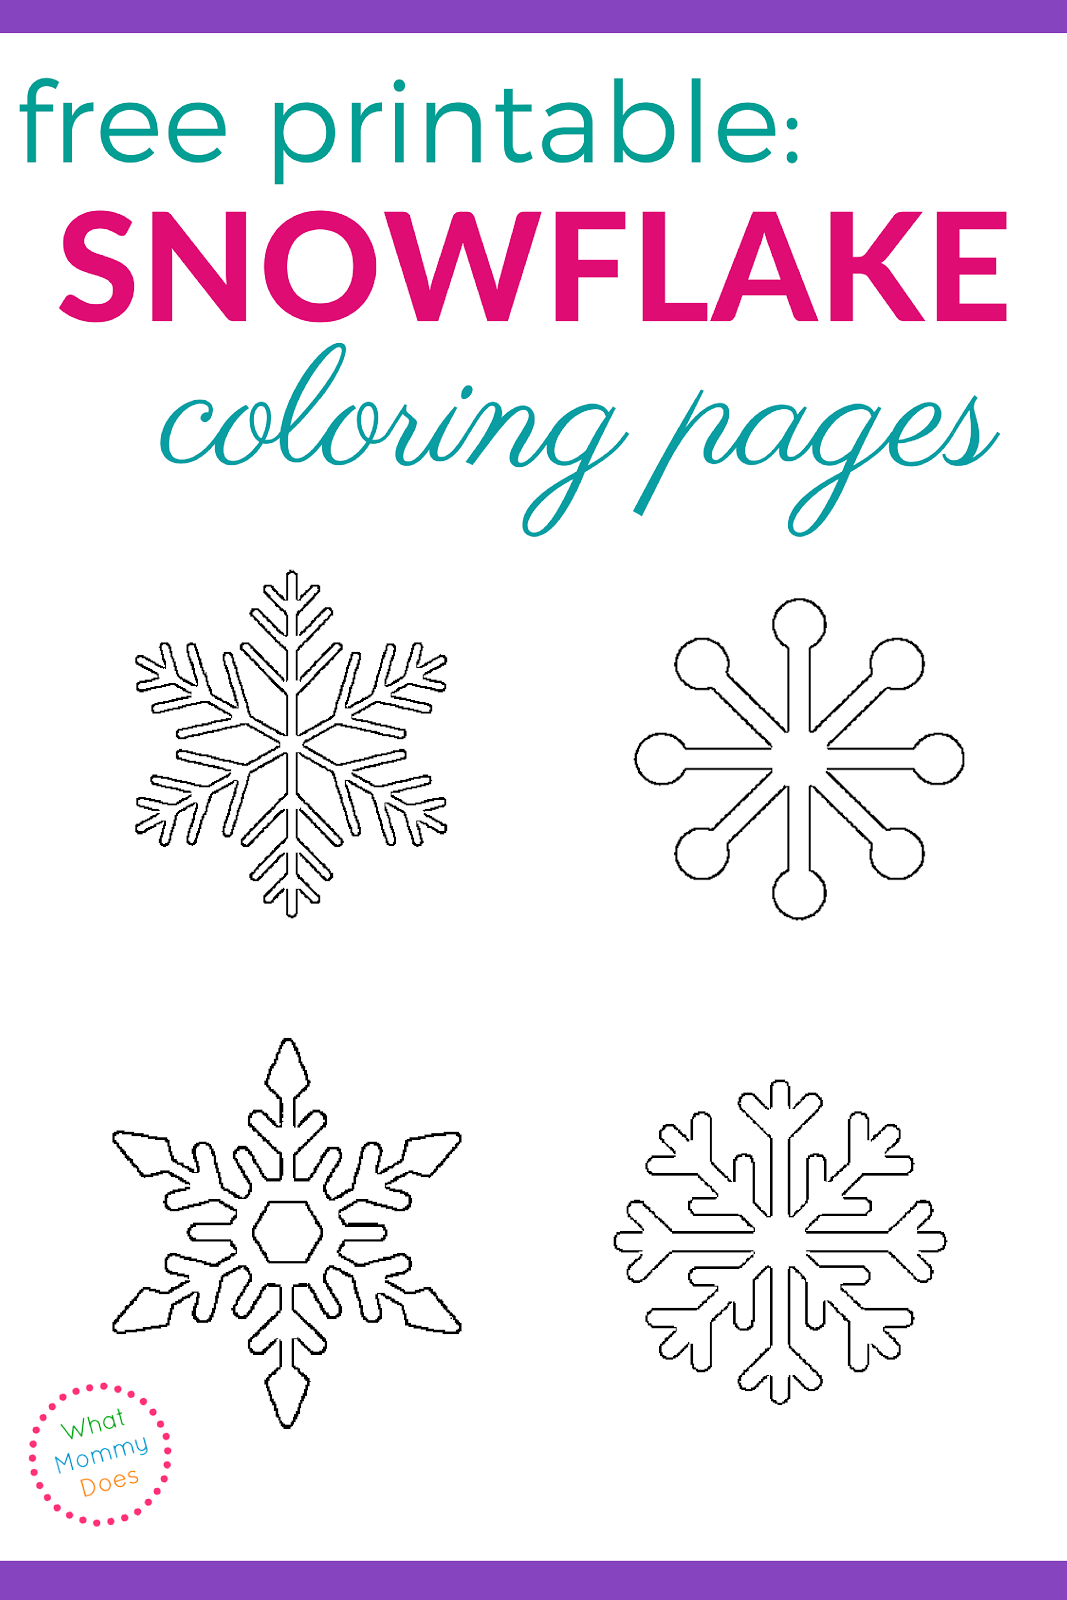 Free Printable Snowflake Coloring Pages What Mommy Does